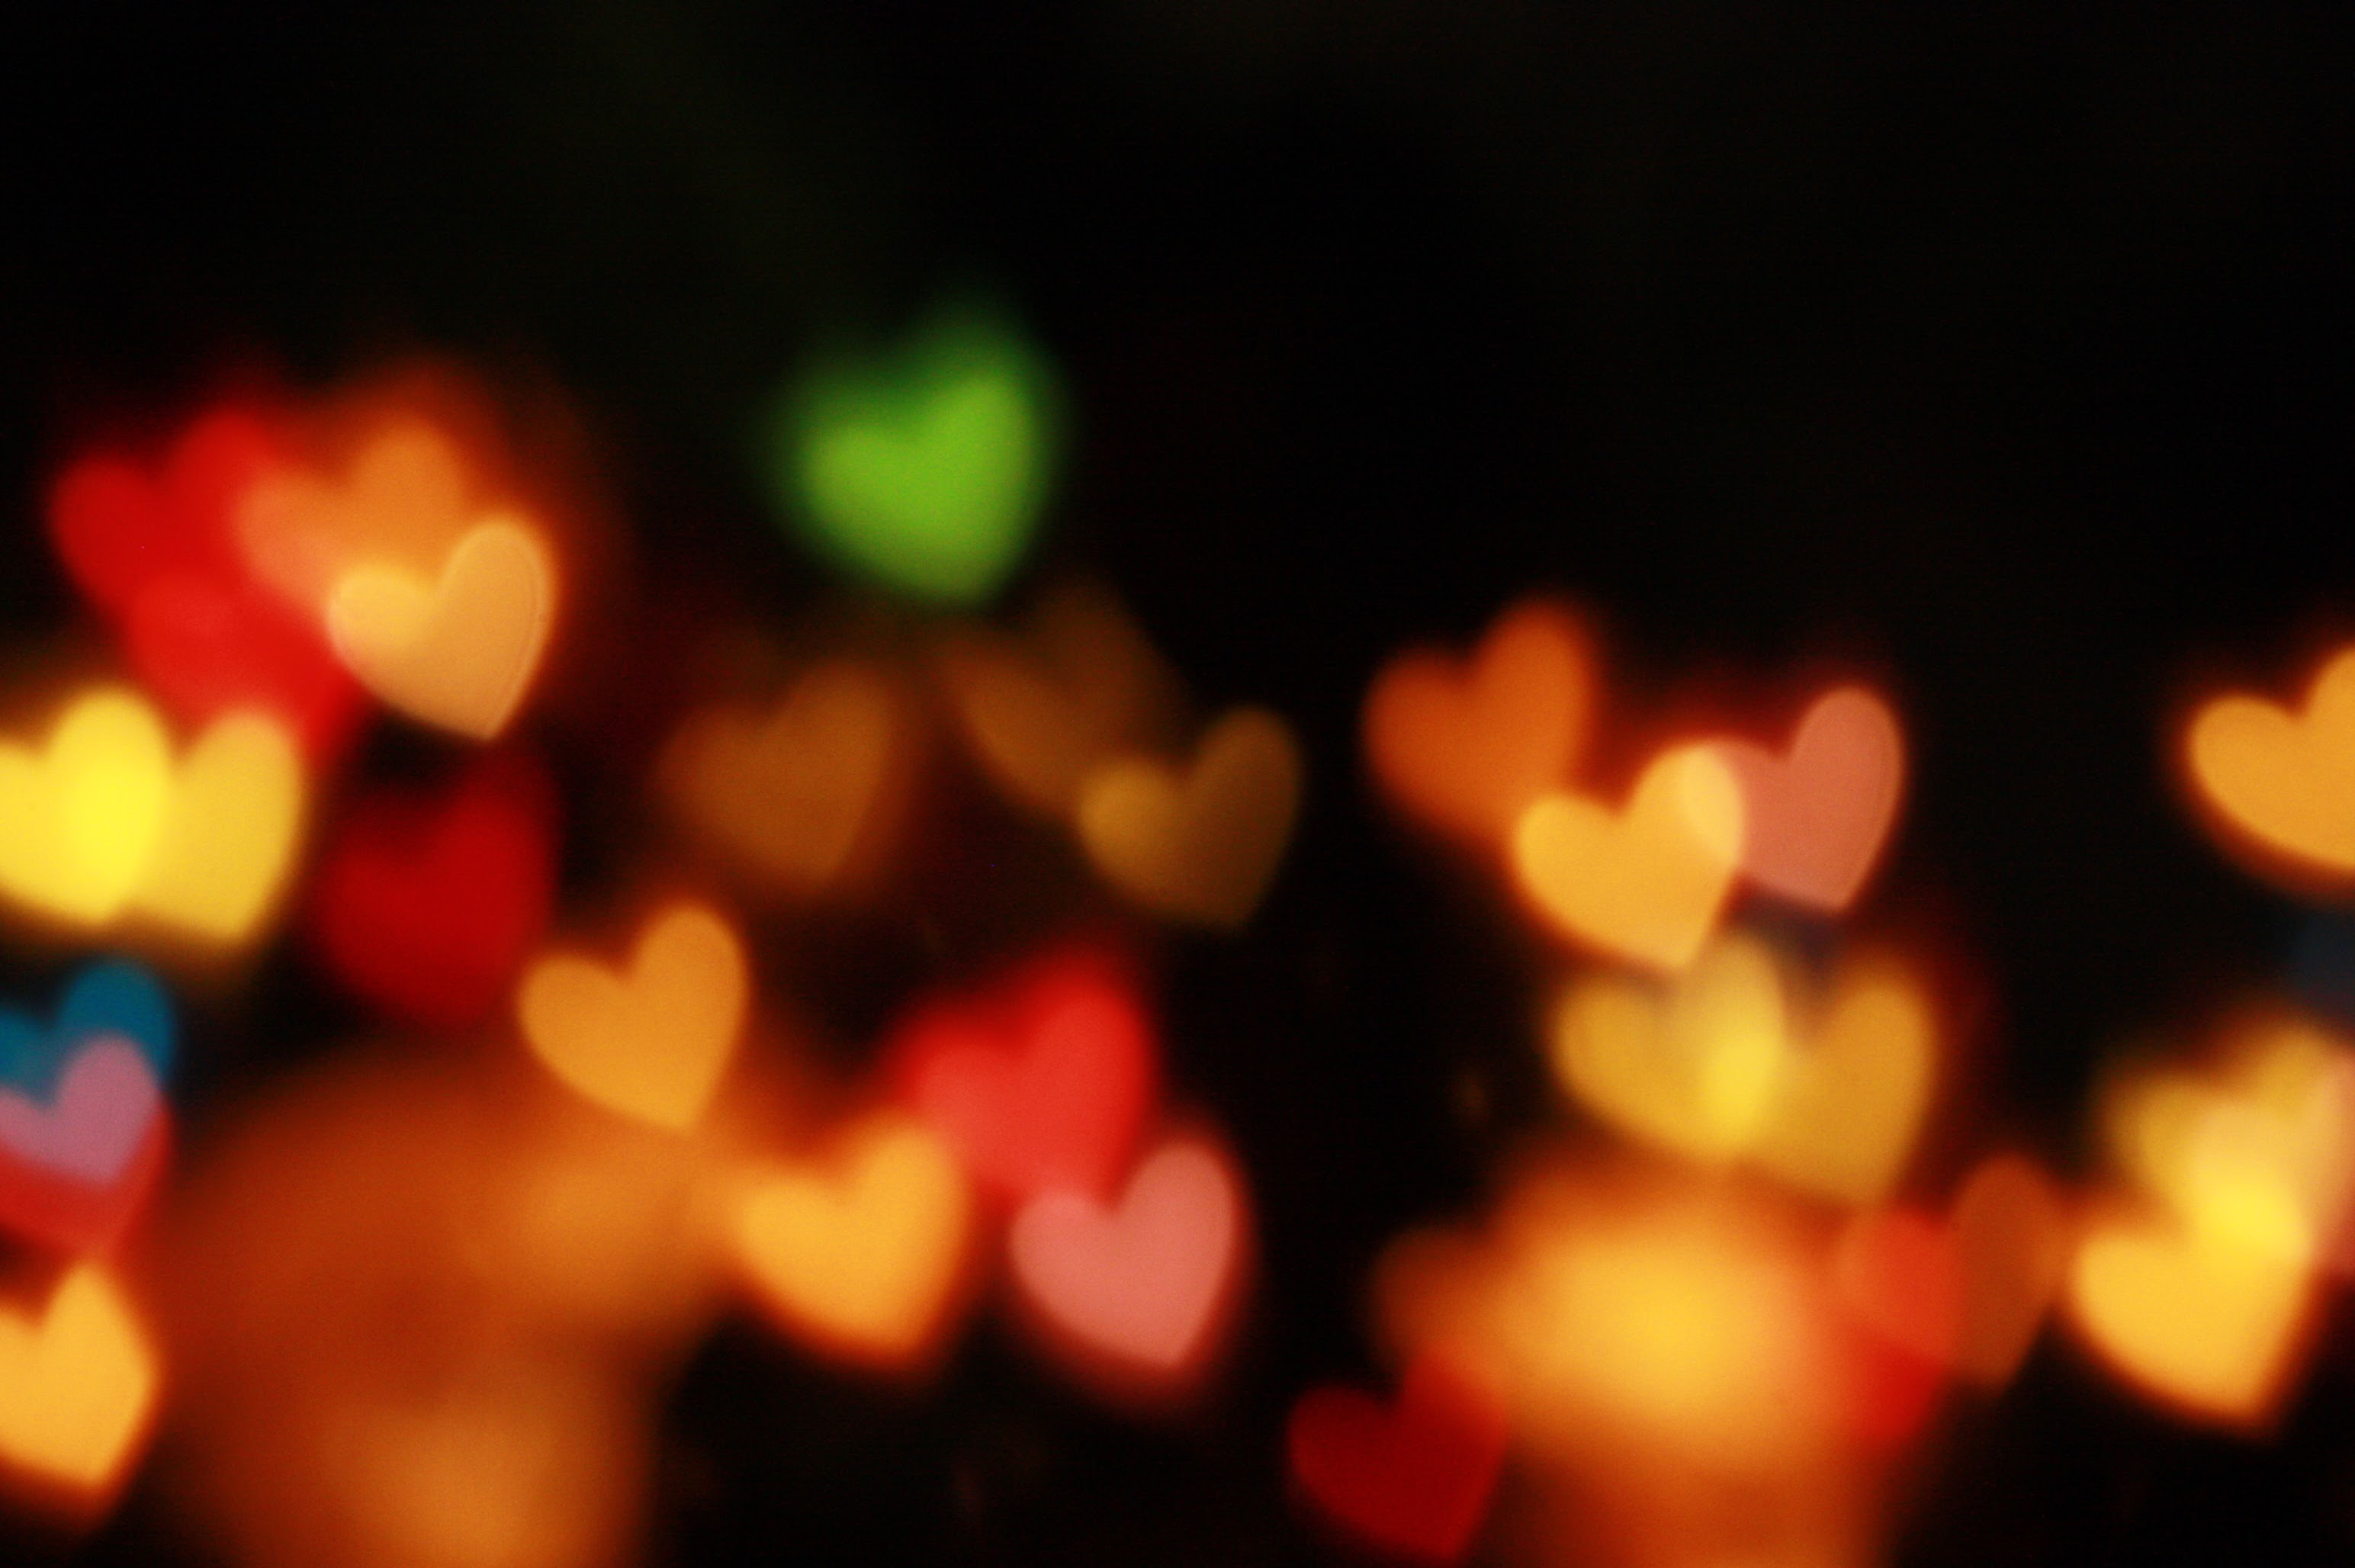 Illuminated multi-colored hearts against a black backdrop